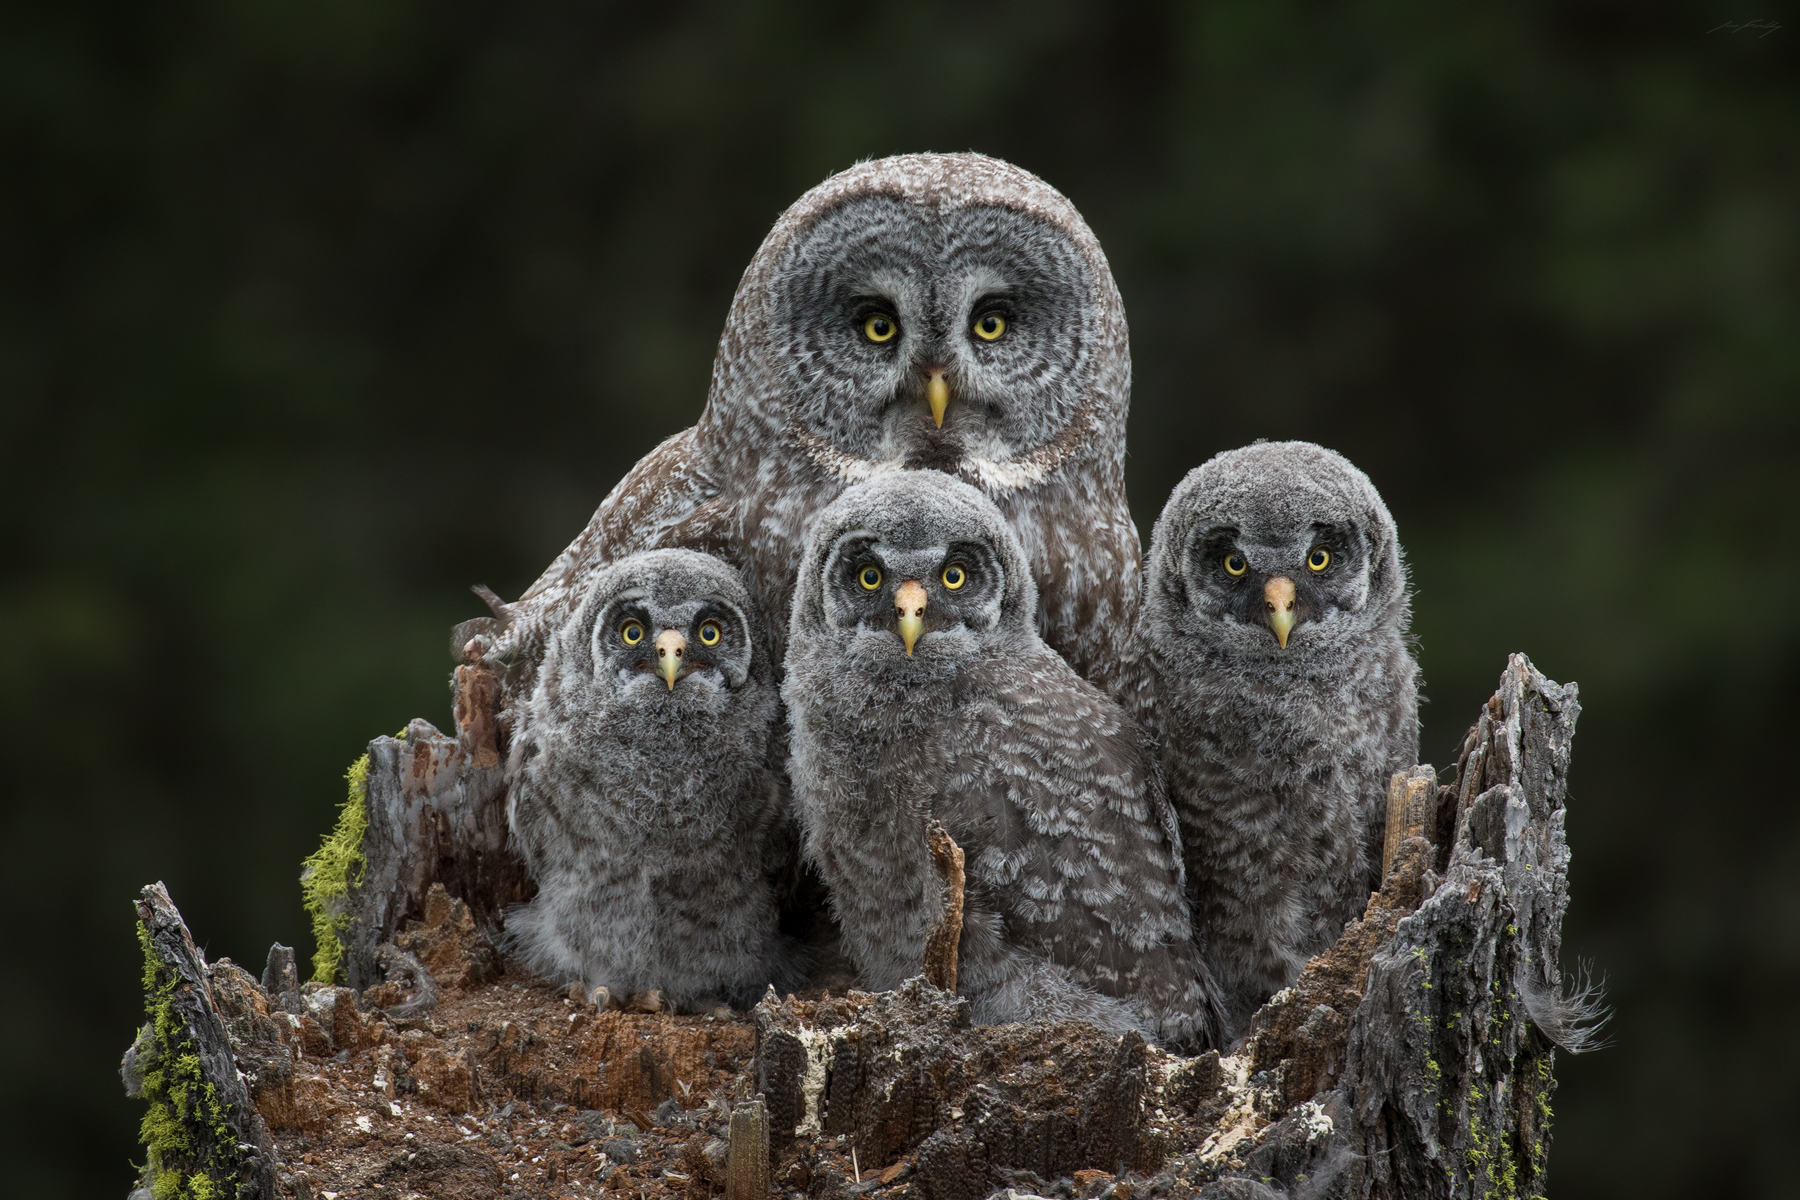 Great Grey Owl Family Portrait, British Columbia, Canada